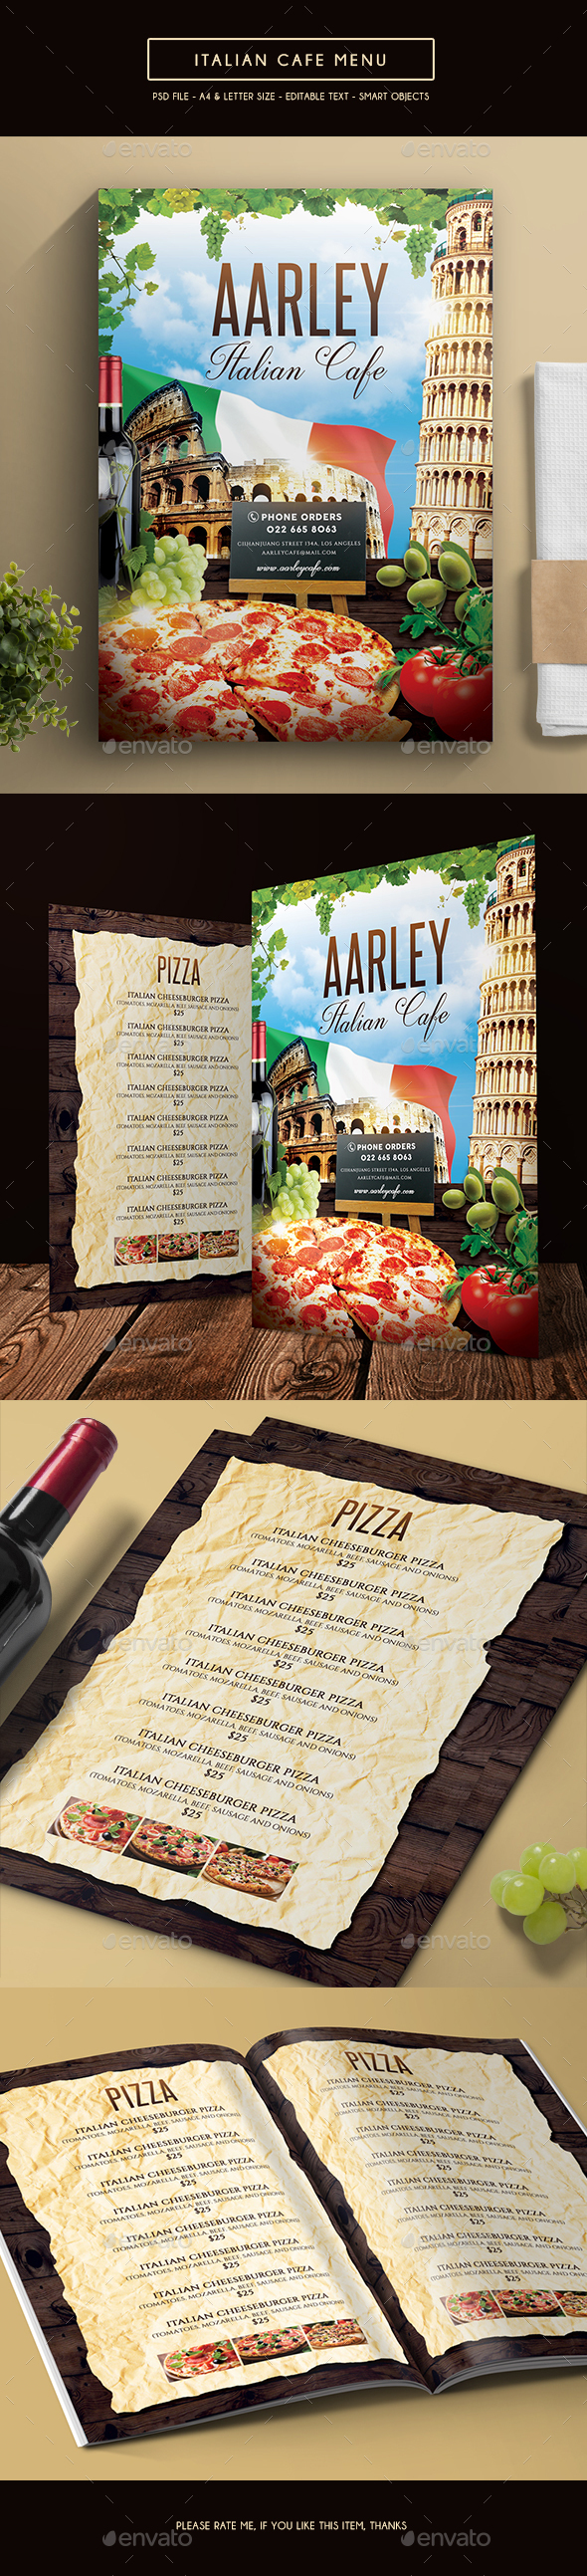 Italian Cafe Menu - Food Menus Print Templates